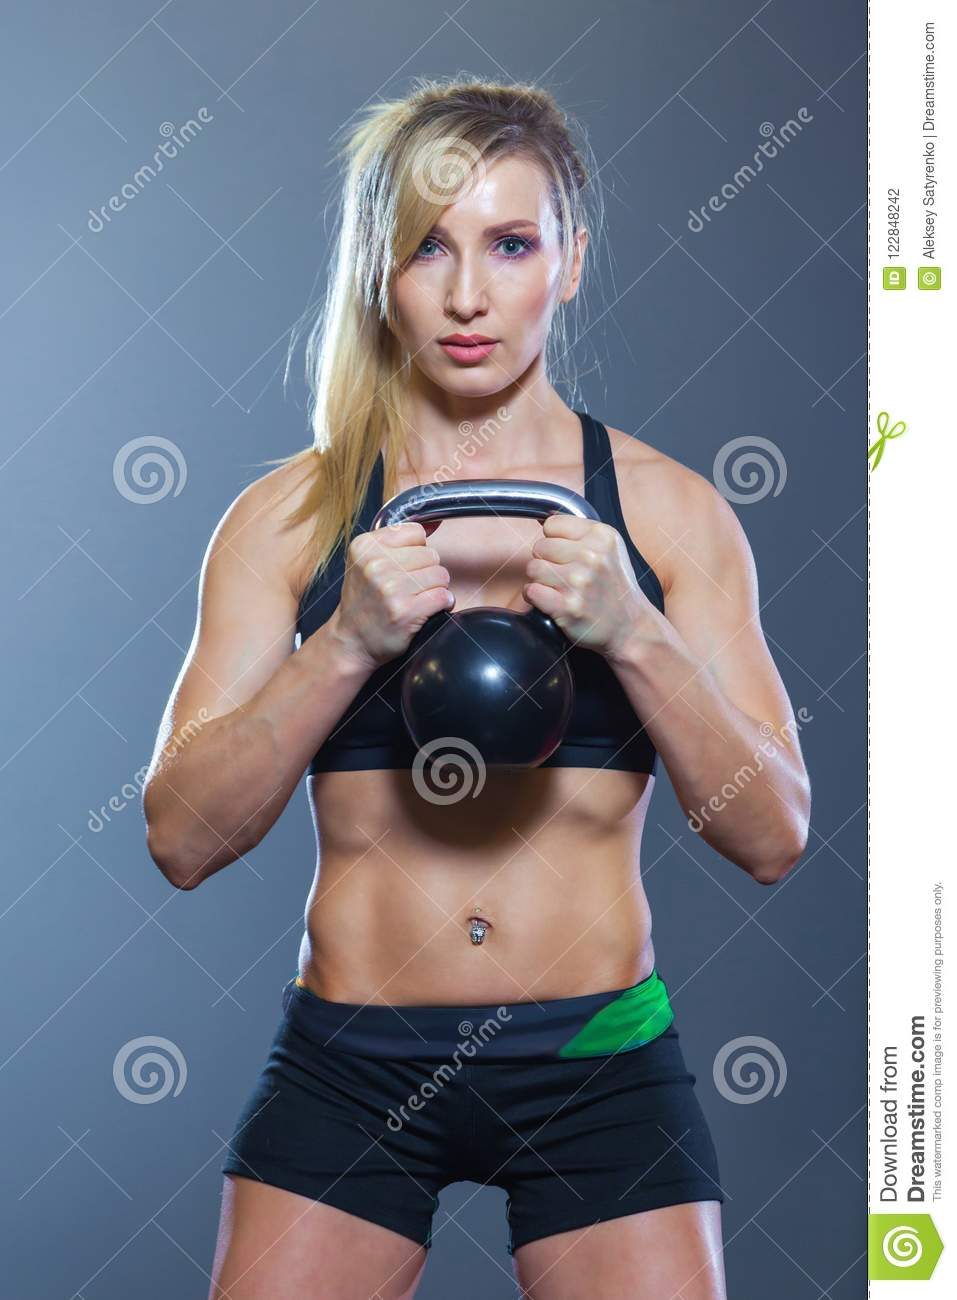 Fit woman doing squats with kettlebell in sport club. gym